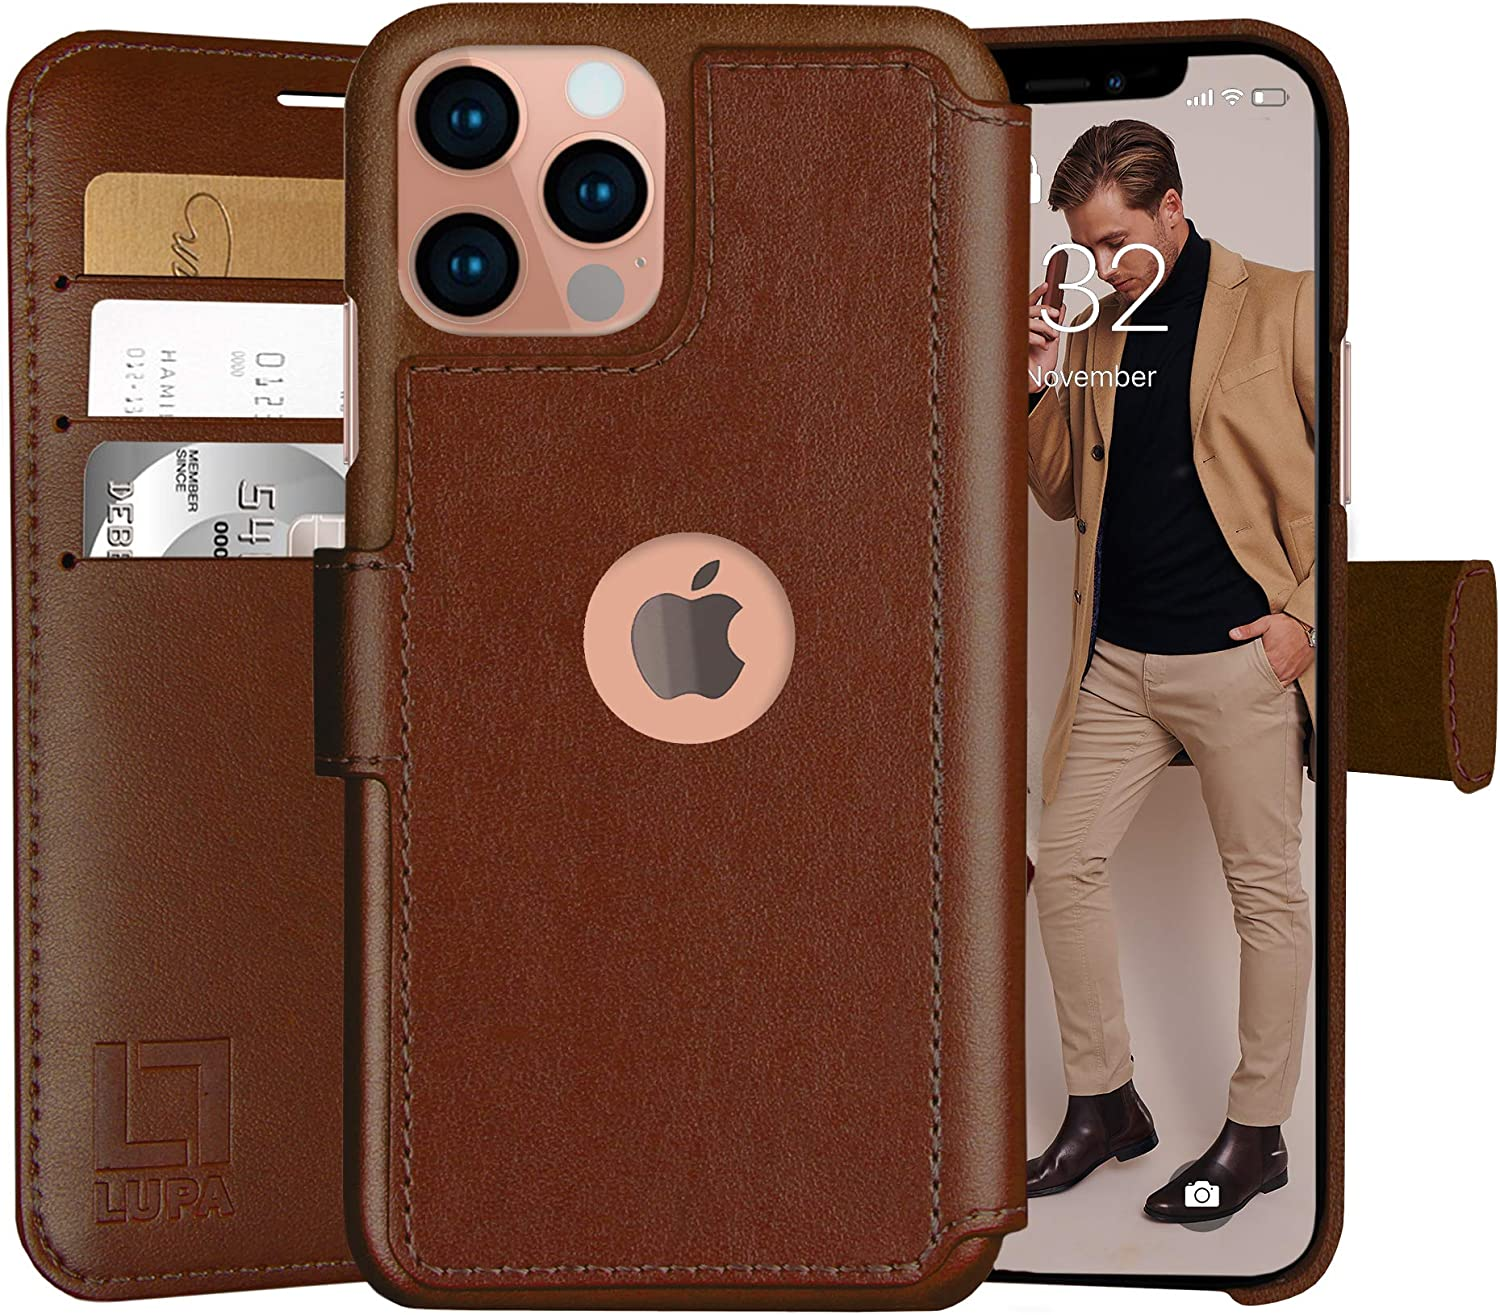 LUPA iPhone 11 Wallet Case -Slim iPhone 11 Flip Case with Credit Card Holder, for Women & Men, Faux Leather i Phone 11 Purse Cases with Magnetic Closure, Caramel Brown…